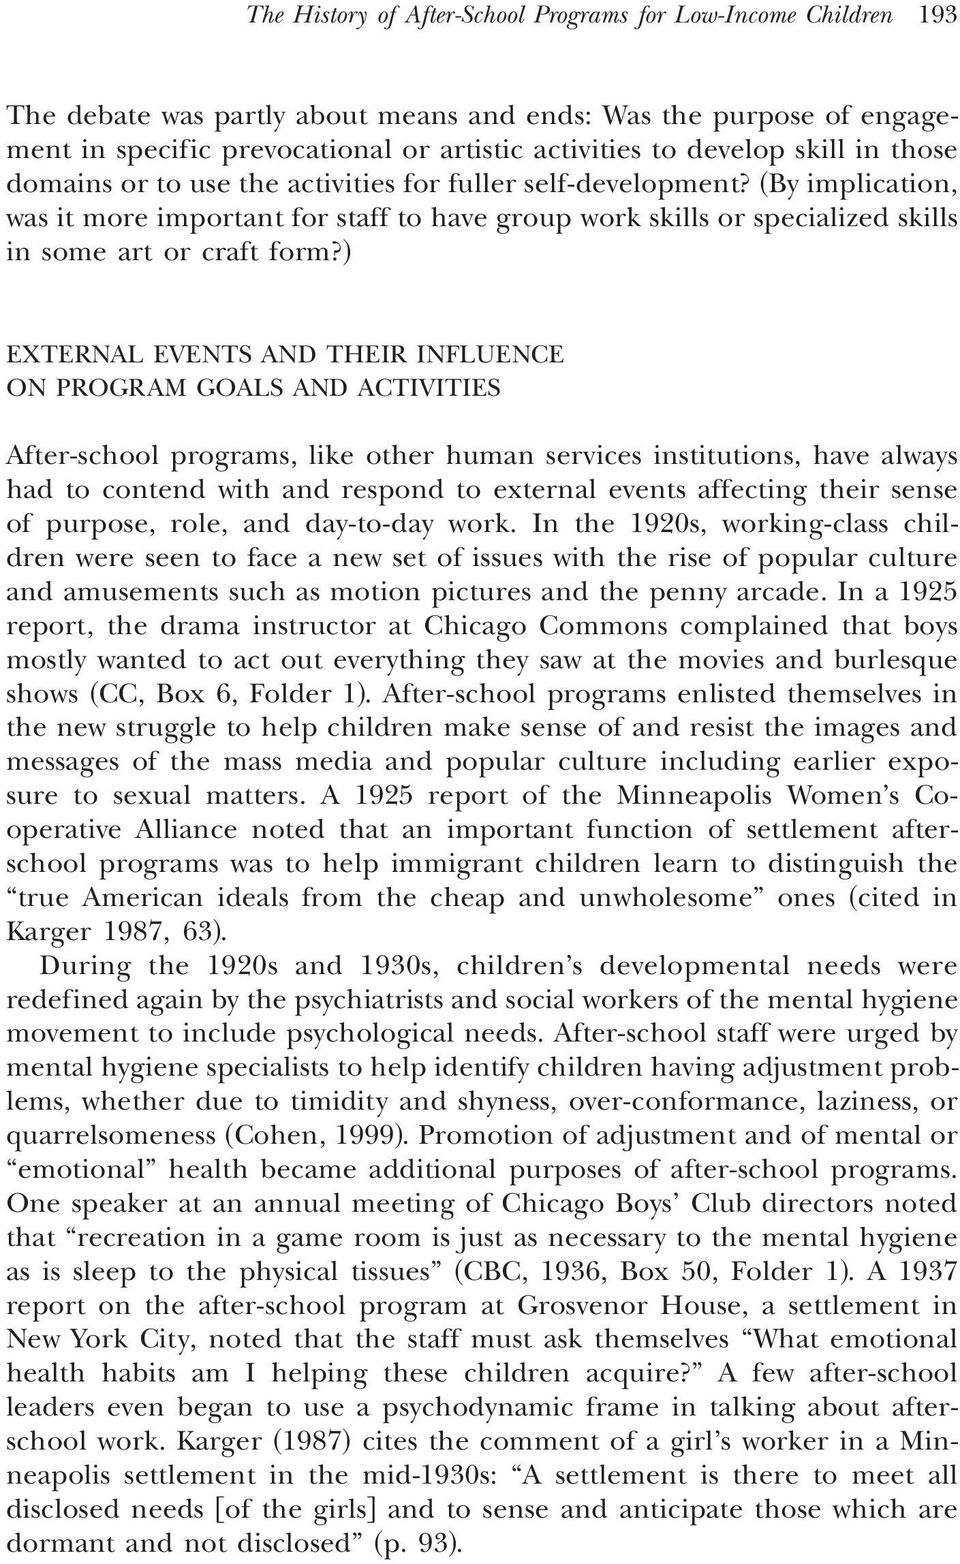 ! EXTERNAL EVENTS AND THEIR INFLUENCE ON PROGRAM GOALS AND ACTIVITIES After-school programs, like other human services institutions, have always had to contend with and respond to external events